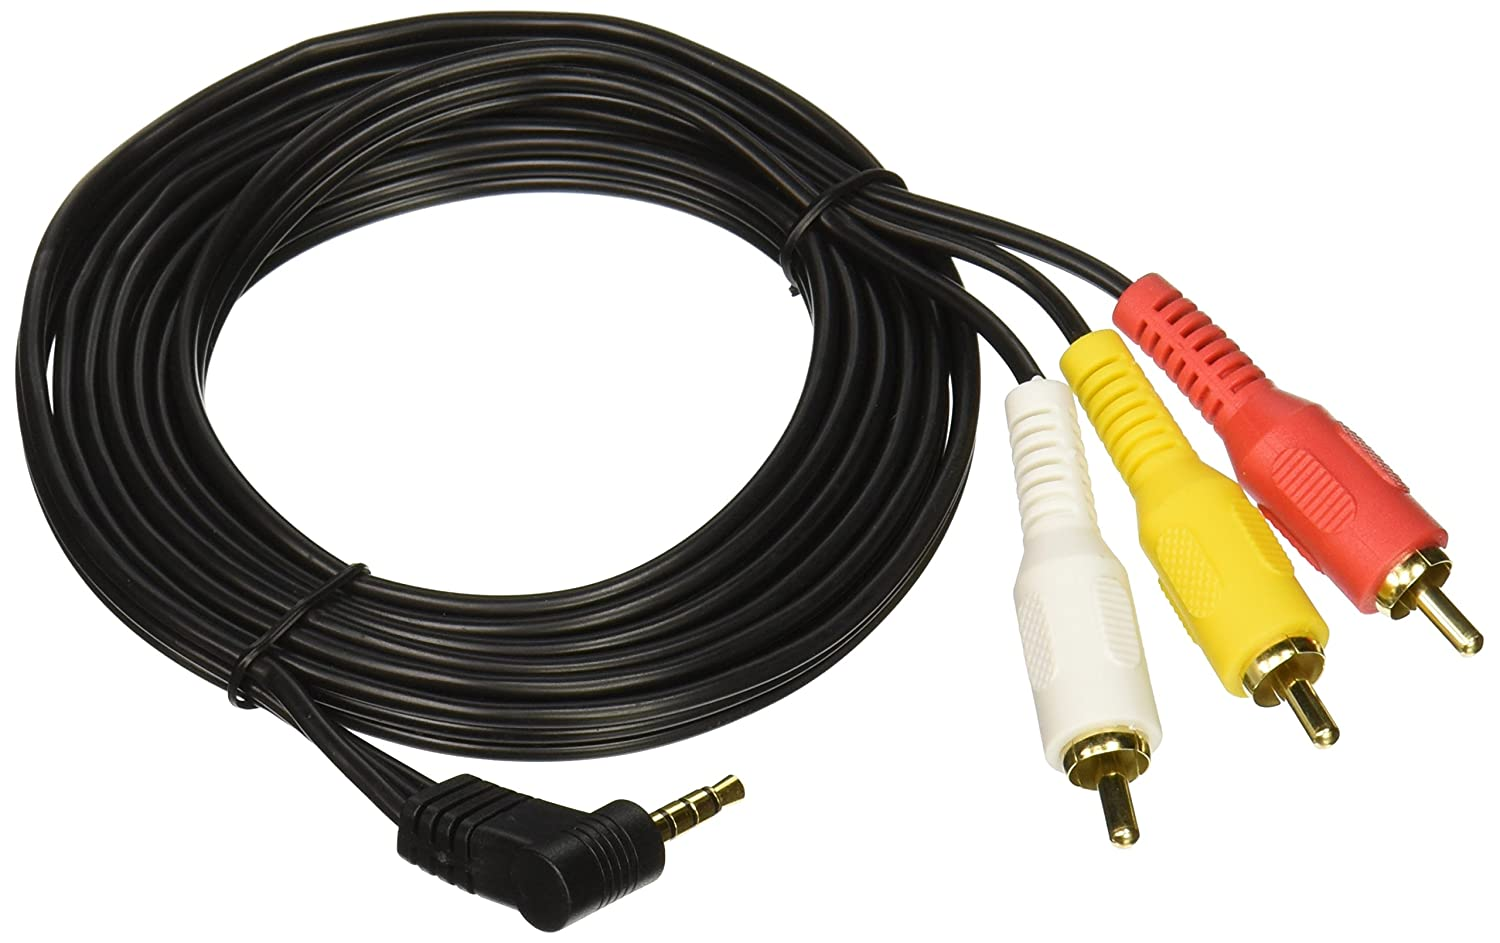 Amazon.com: Cable Showcase 10A1-04106 6-Feet Sony JVC 3.5 mm to 3 RCA AV  Camcorder Video Cable: Home Audio & Theater